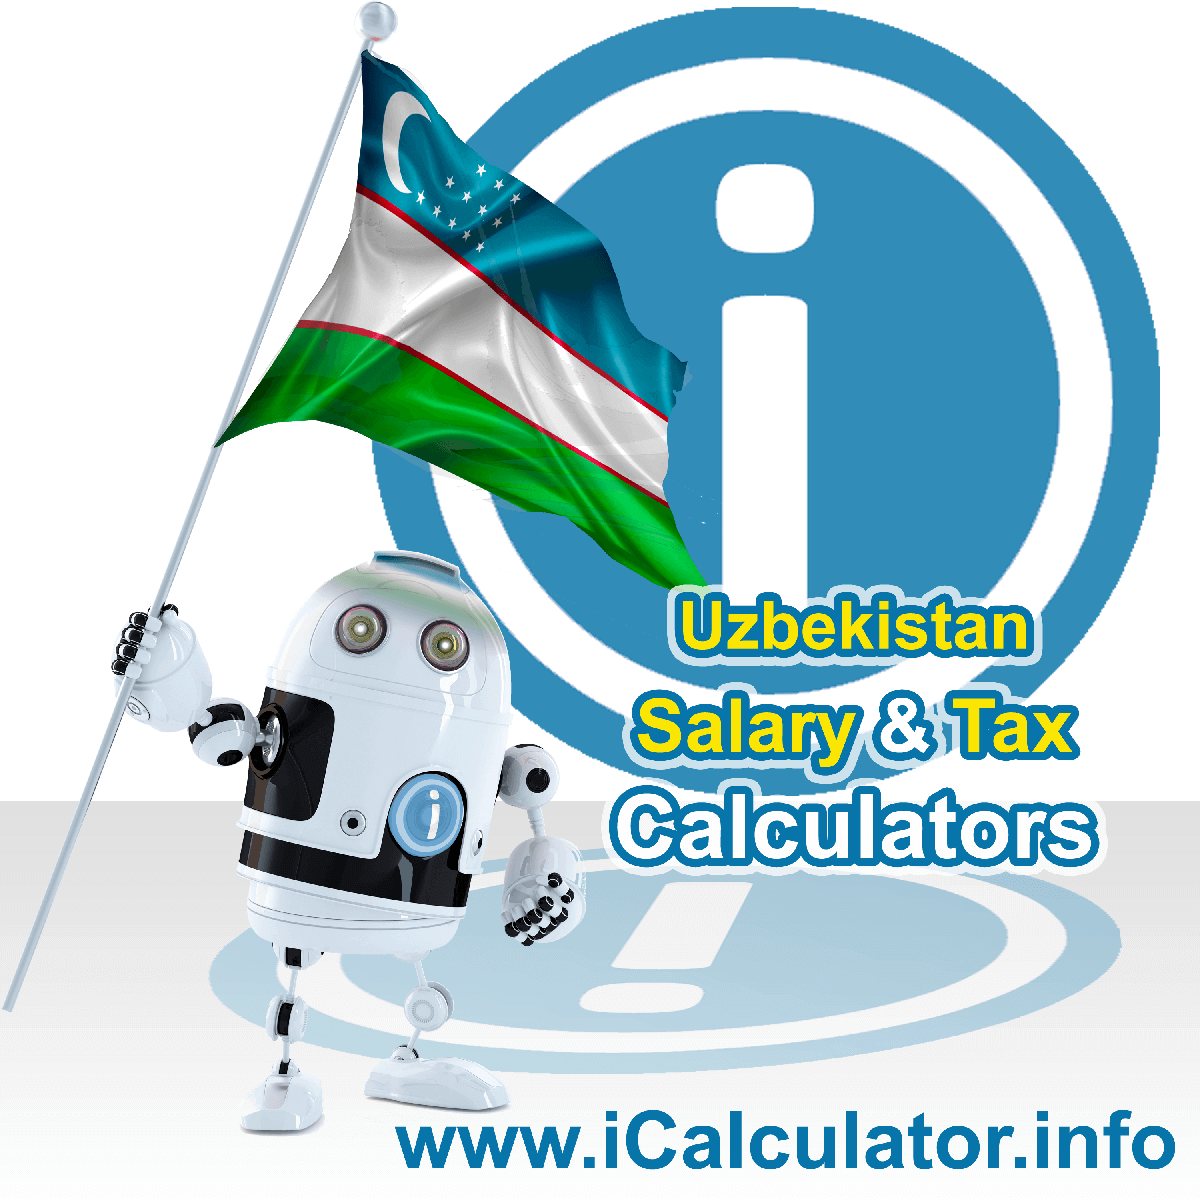 Uzbekistan Tax Calculator. This image shows the Uzbekistan flag and information relating to the tax formula for the Uzbekistan Salary Calculator